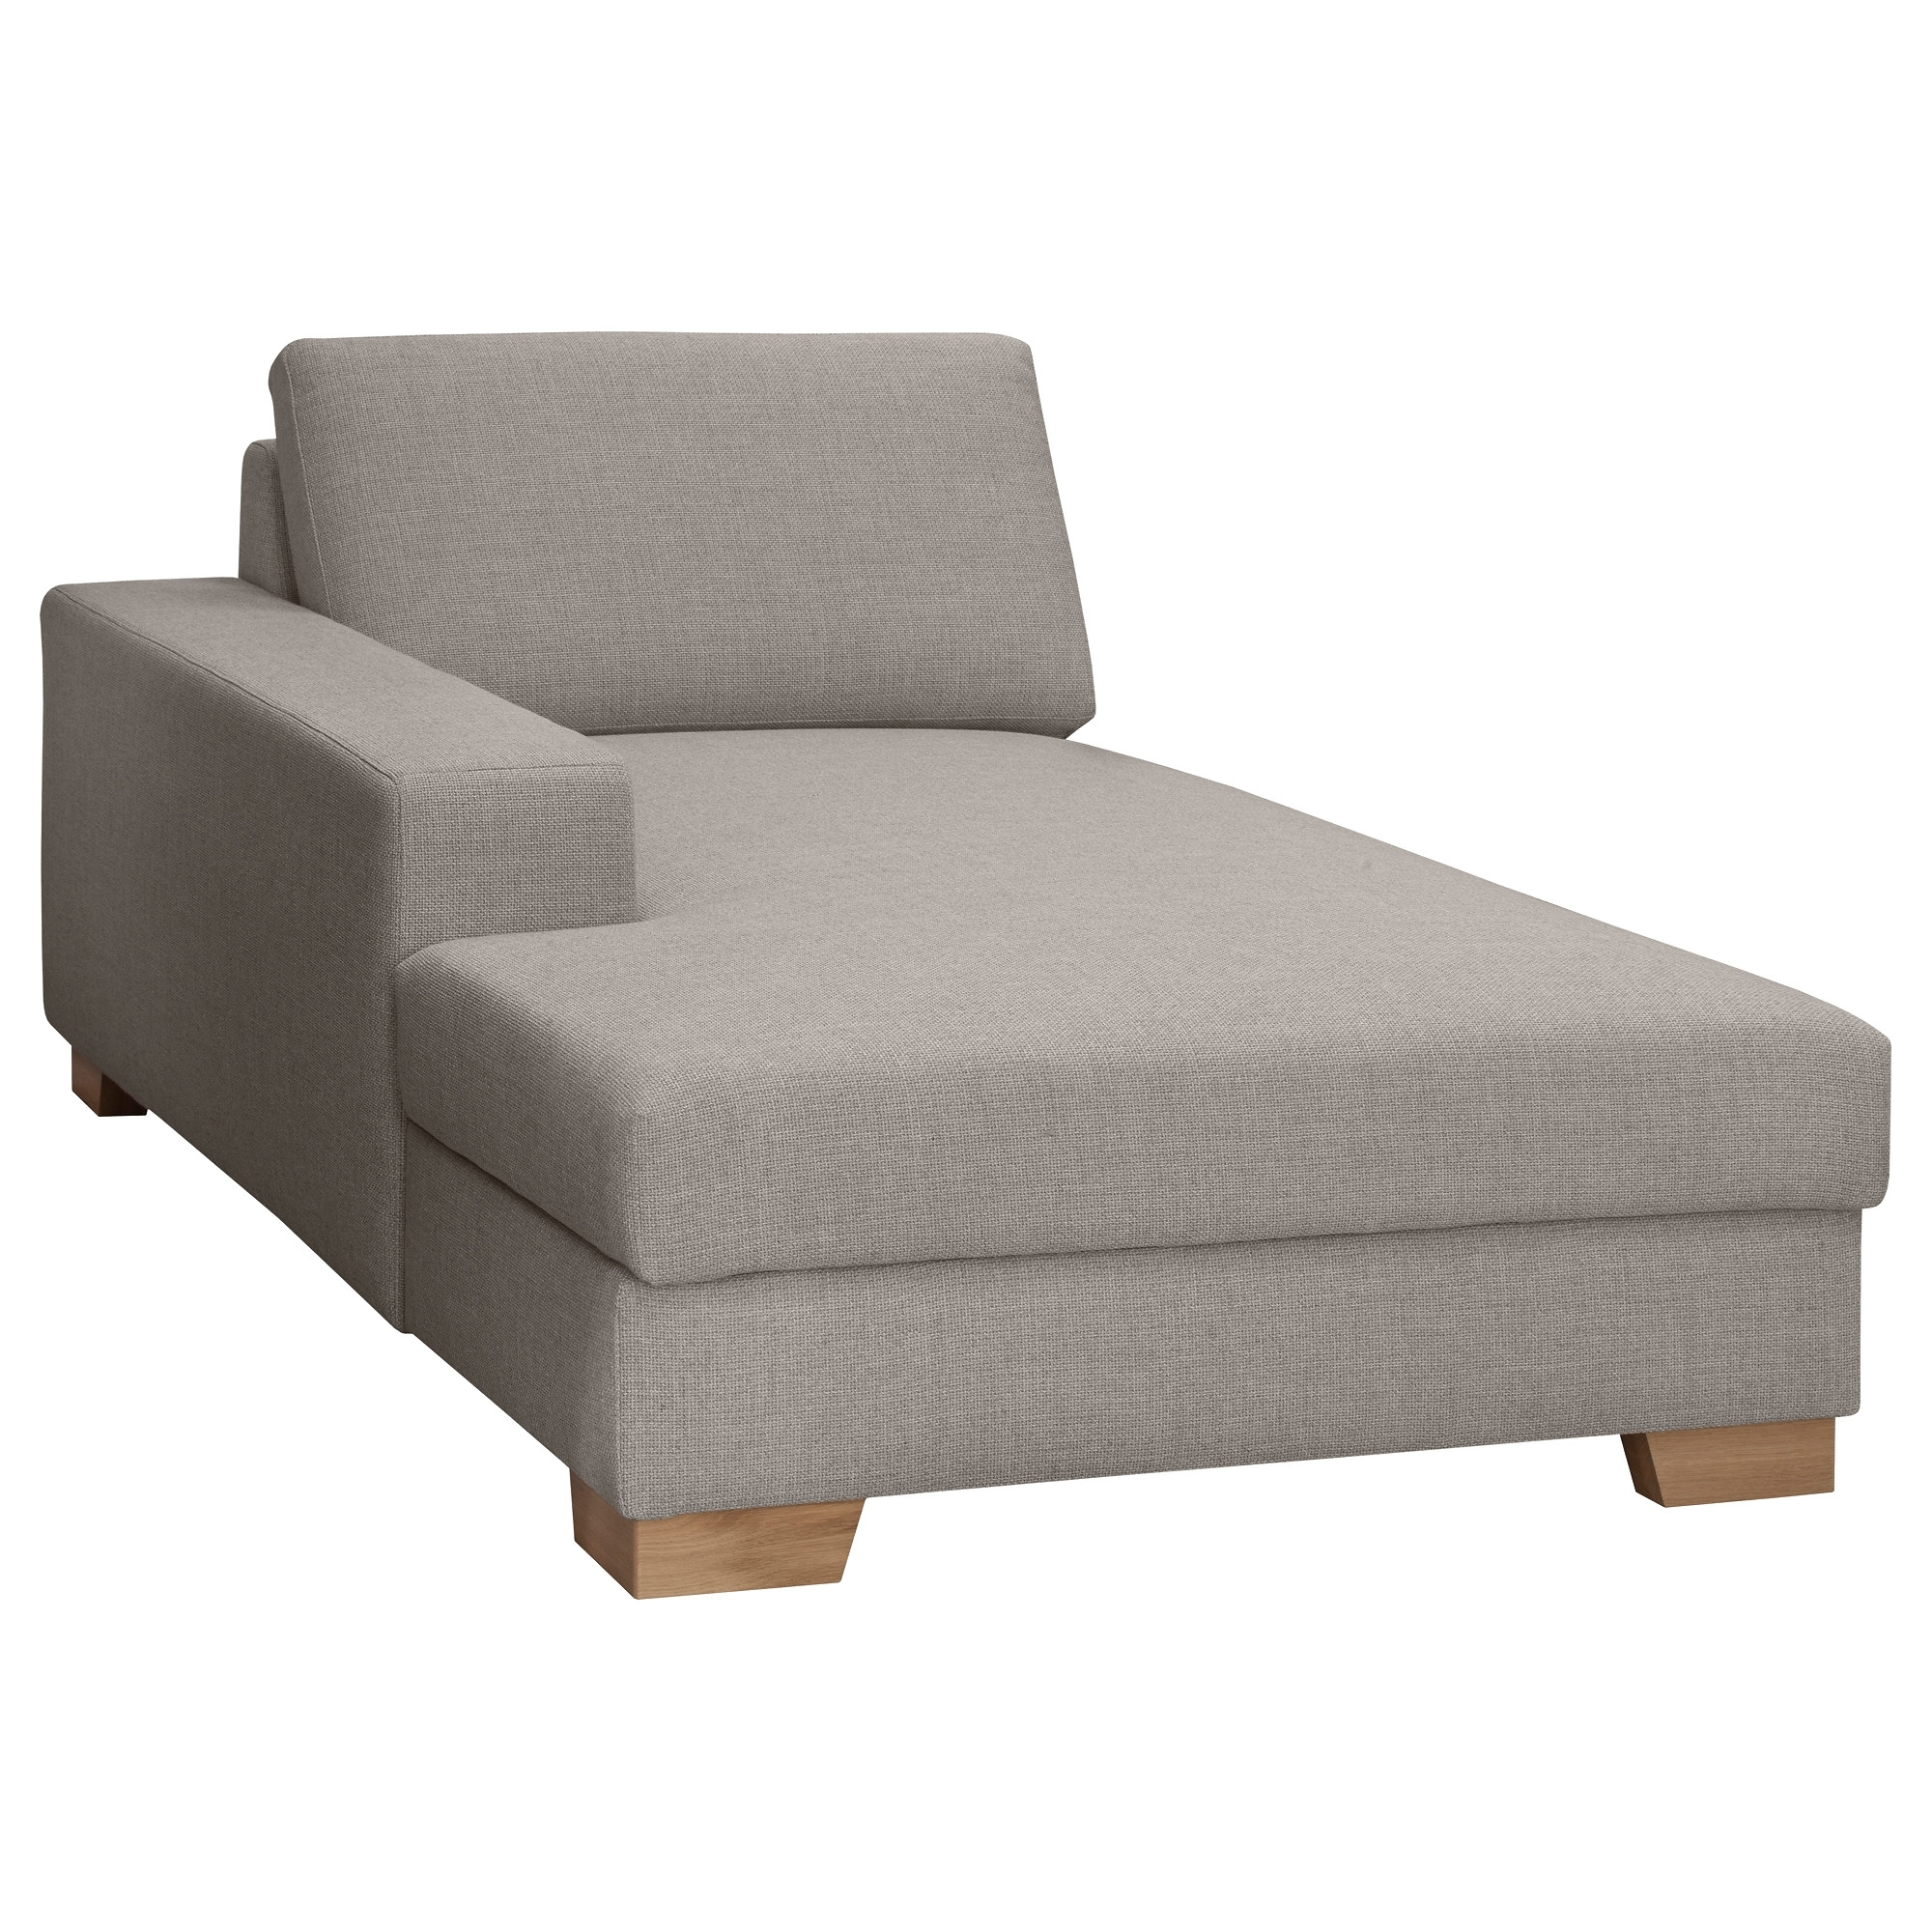 Newest S Duisant Chaise Longue Ikea 0391103 Pe559871 S5 Poang Giardino Throughout Ikea Chaise Longues (View 14 of 15)